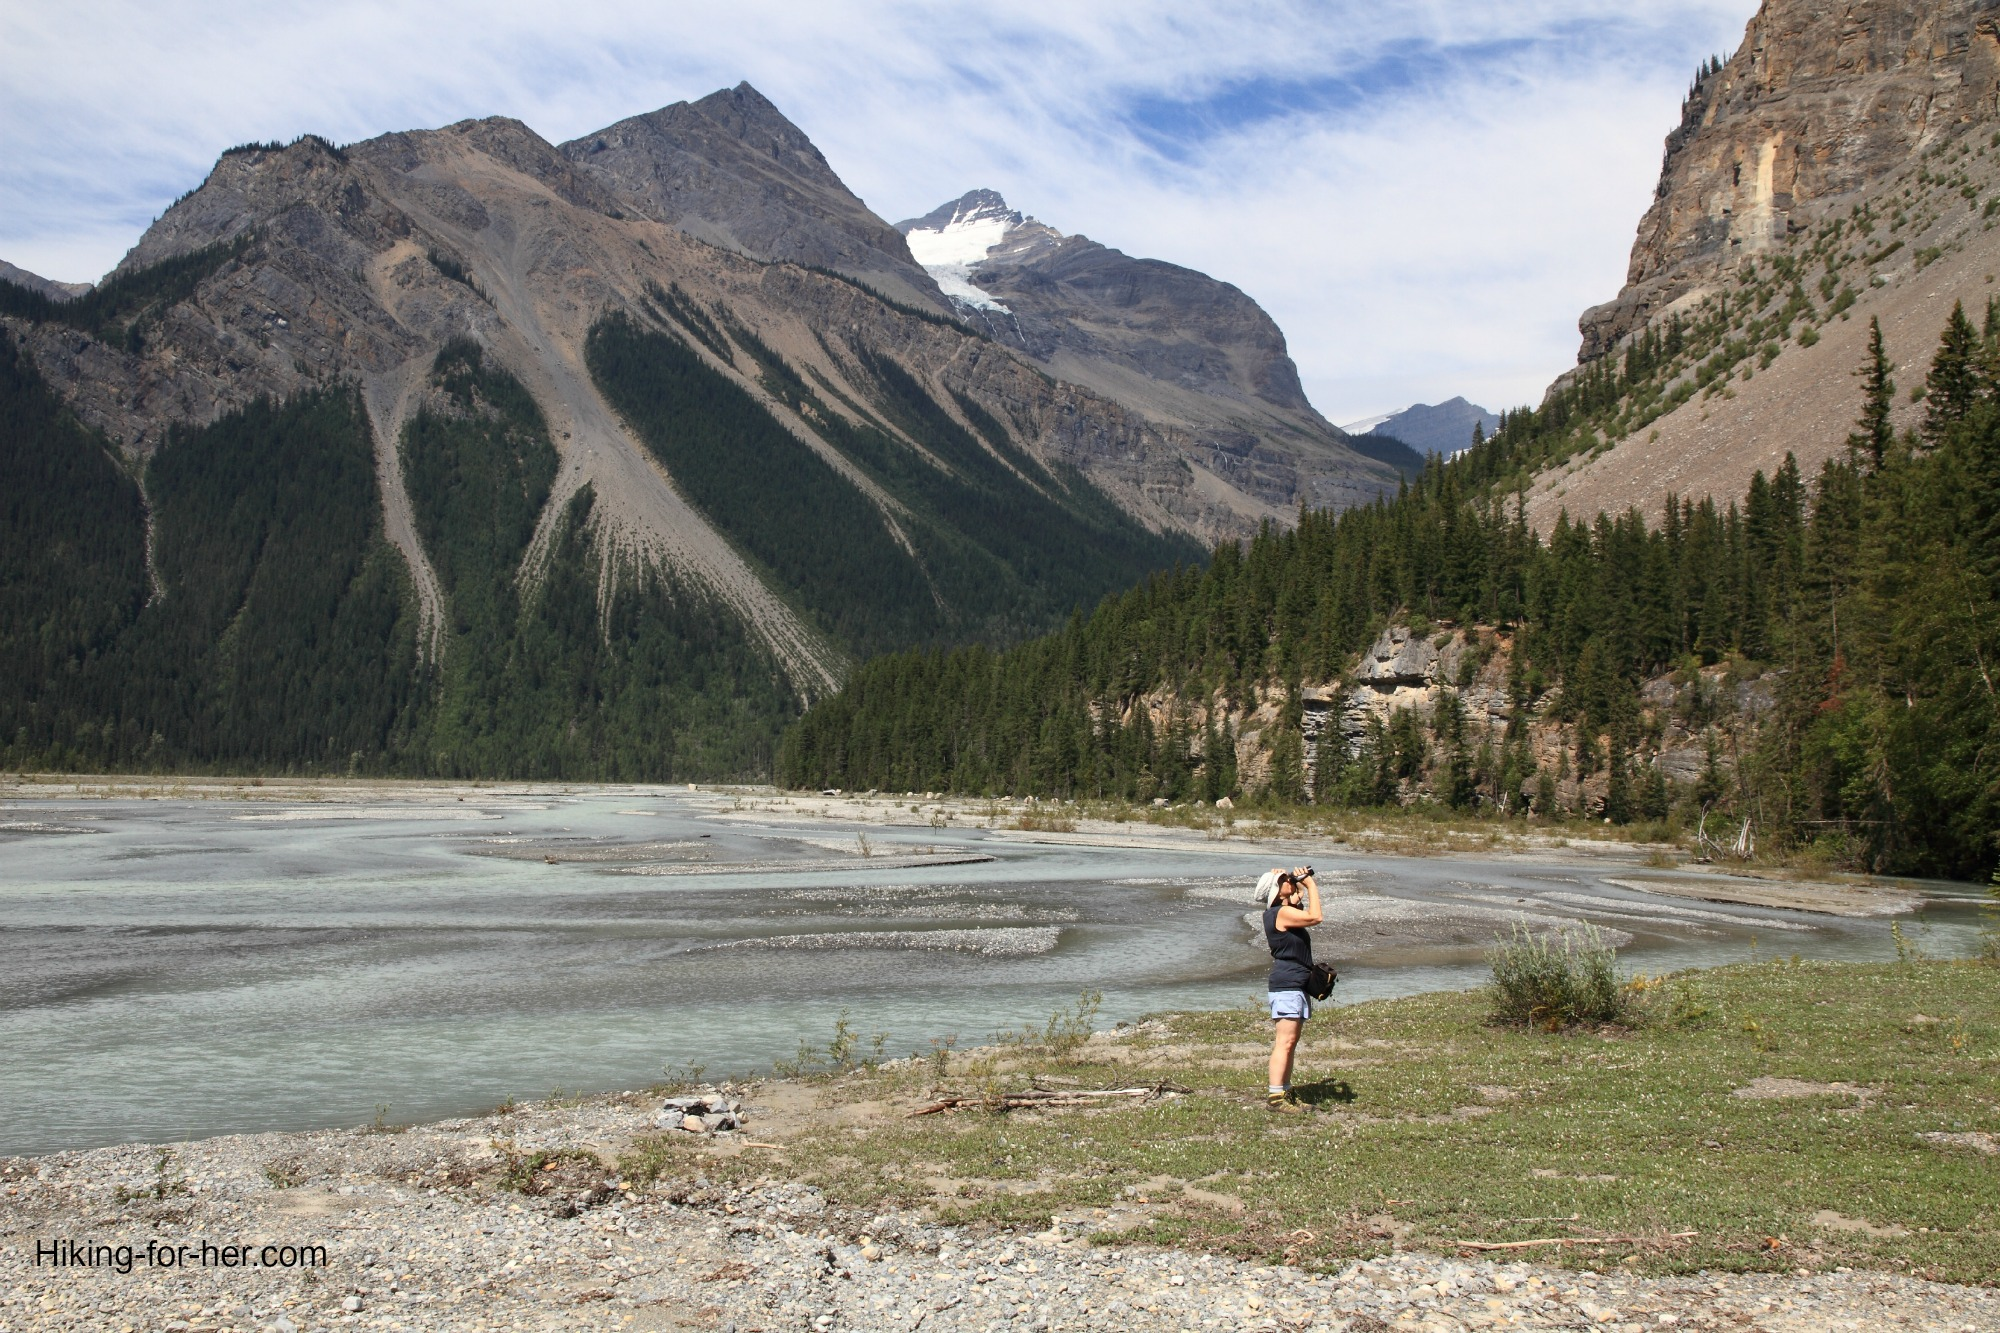 Female hiker taking a photo of a Mount Robson from Kinney Lake